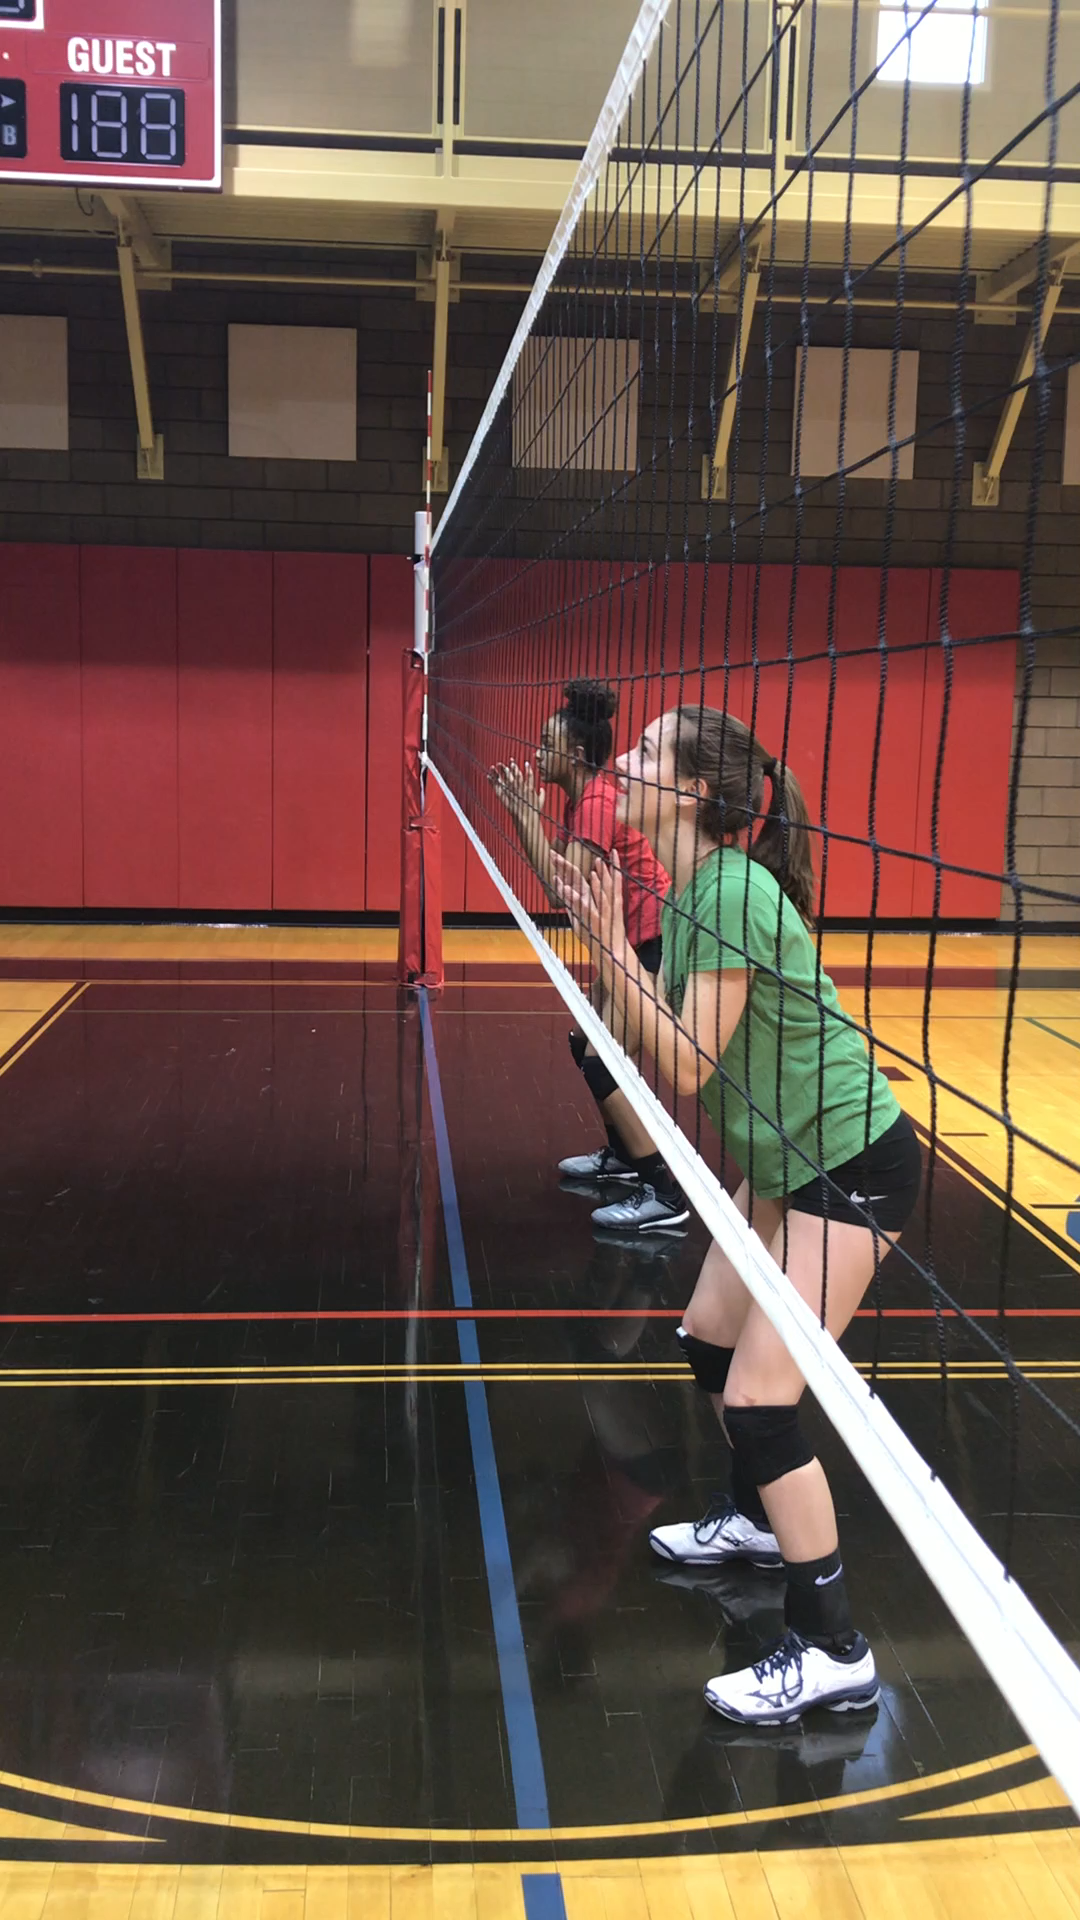 Best Volleyball Matches Volleyball Blocking Drills Blocking Footwork And Penetrating The Net In 2020 Volleyball Inspiration Volleyball Workouts Volleyball Training